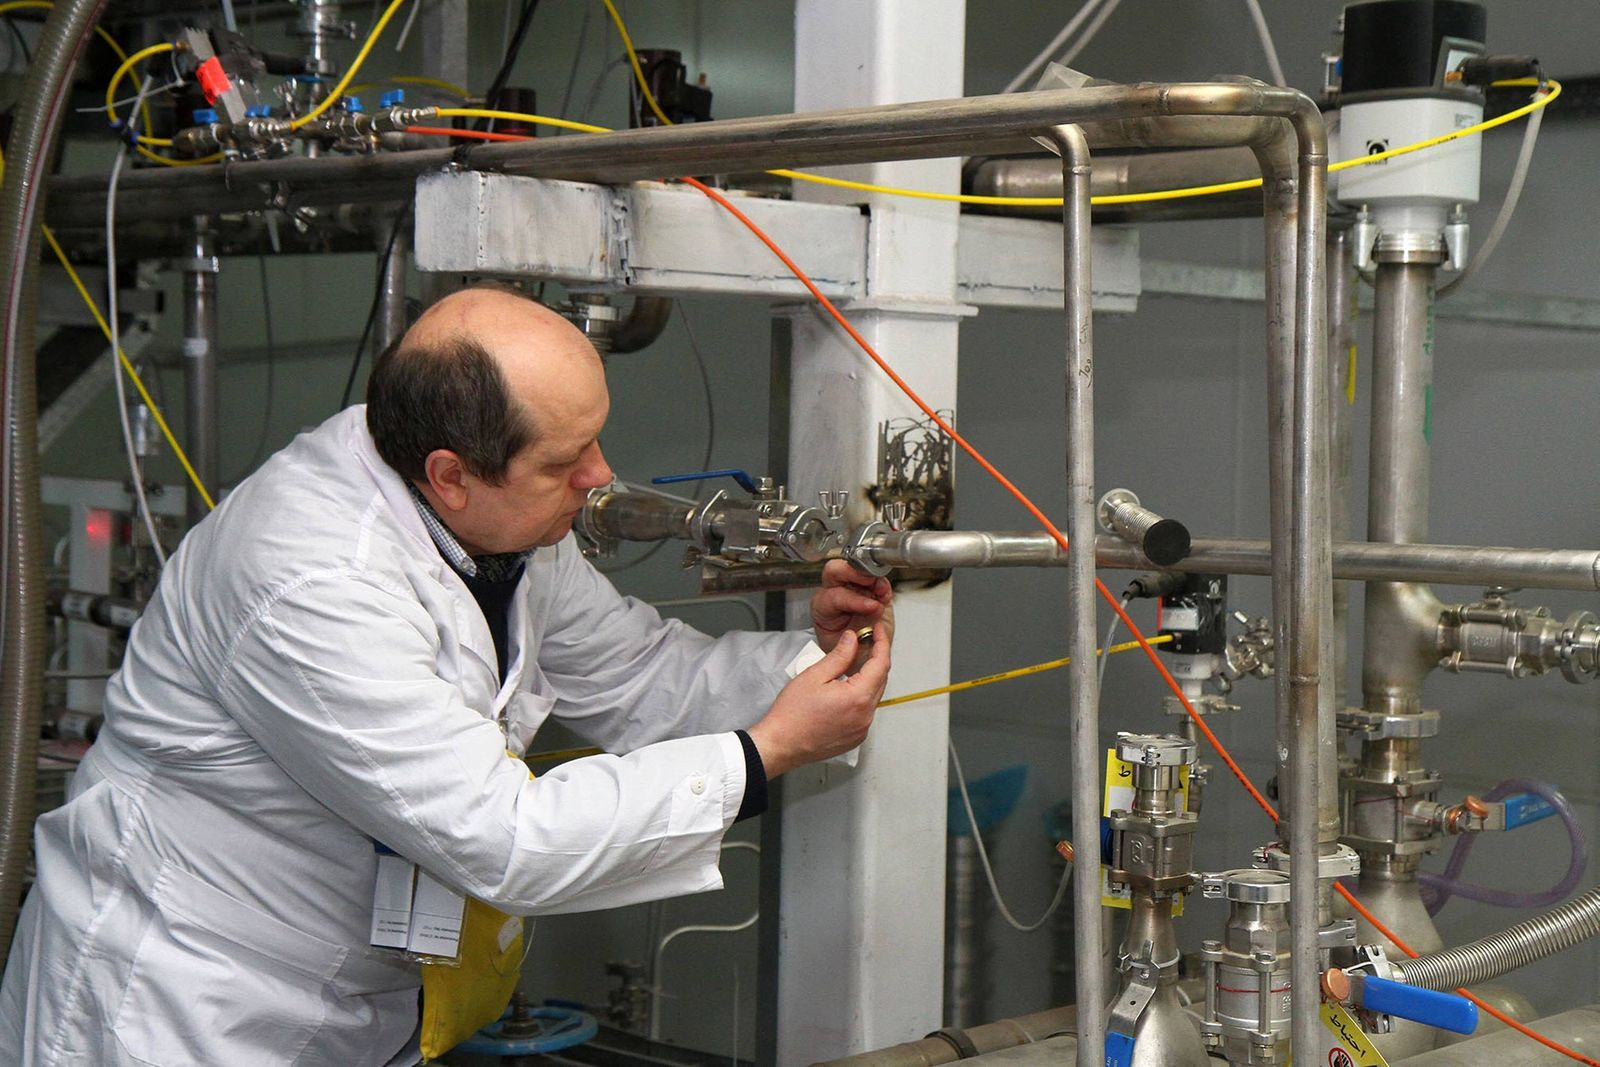 A Member of the IAEA inspection team examines the process inside Natanz uranium enrichment plant on January 20, 2014 in